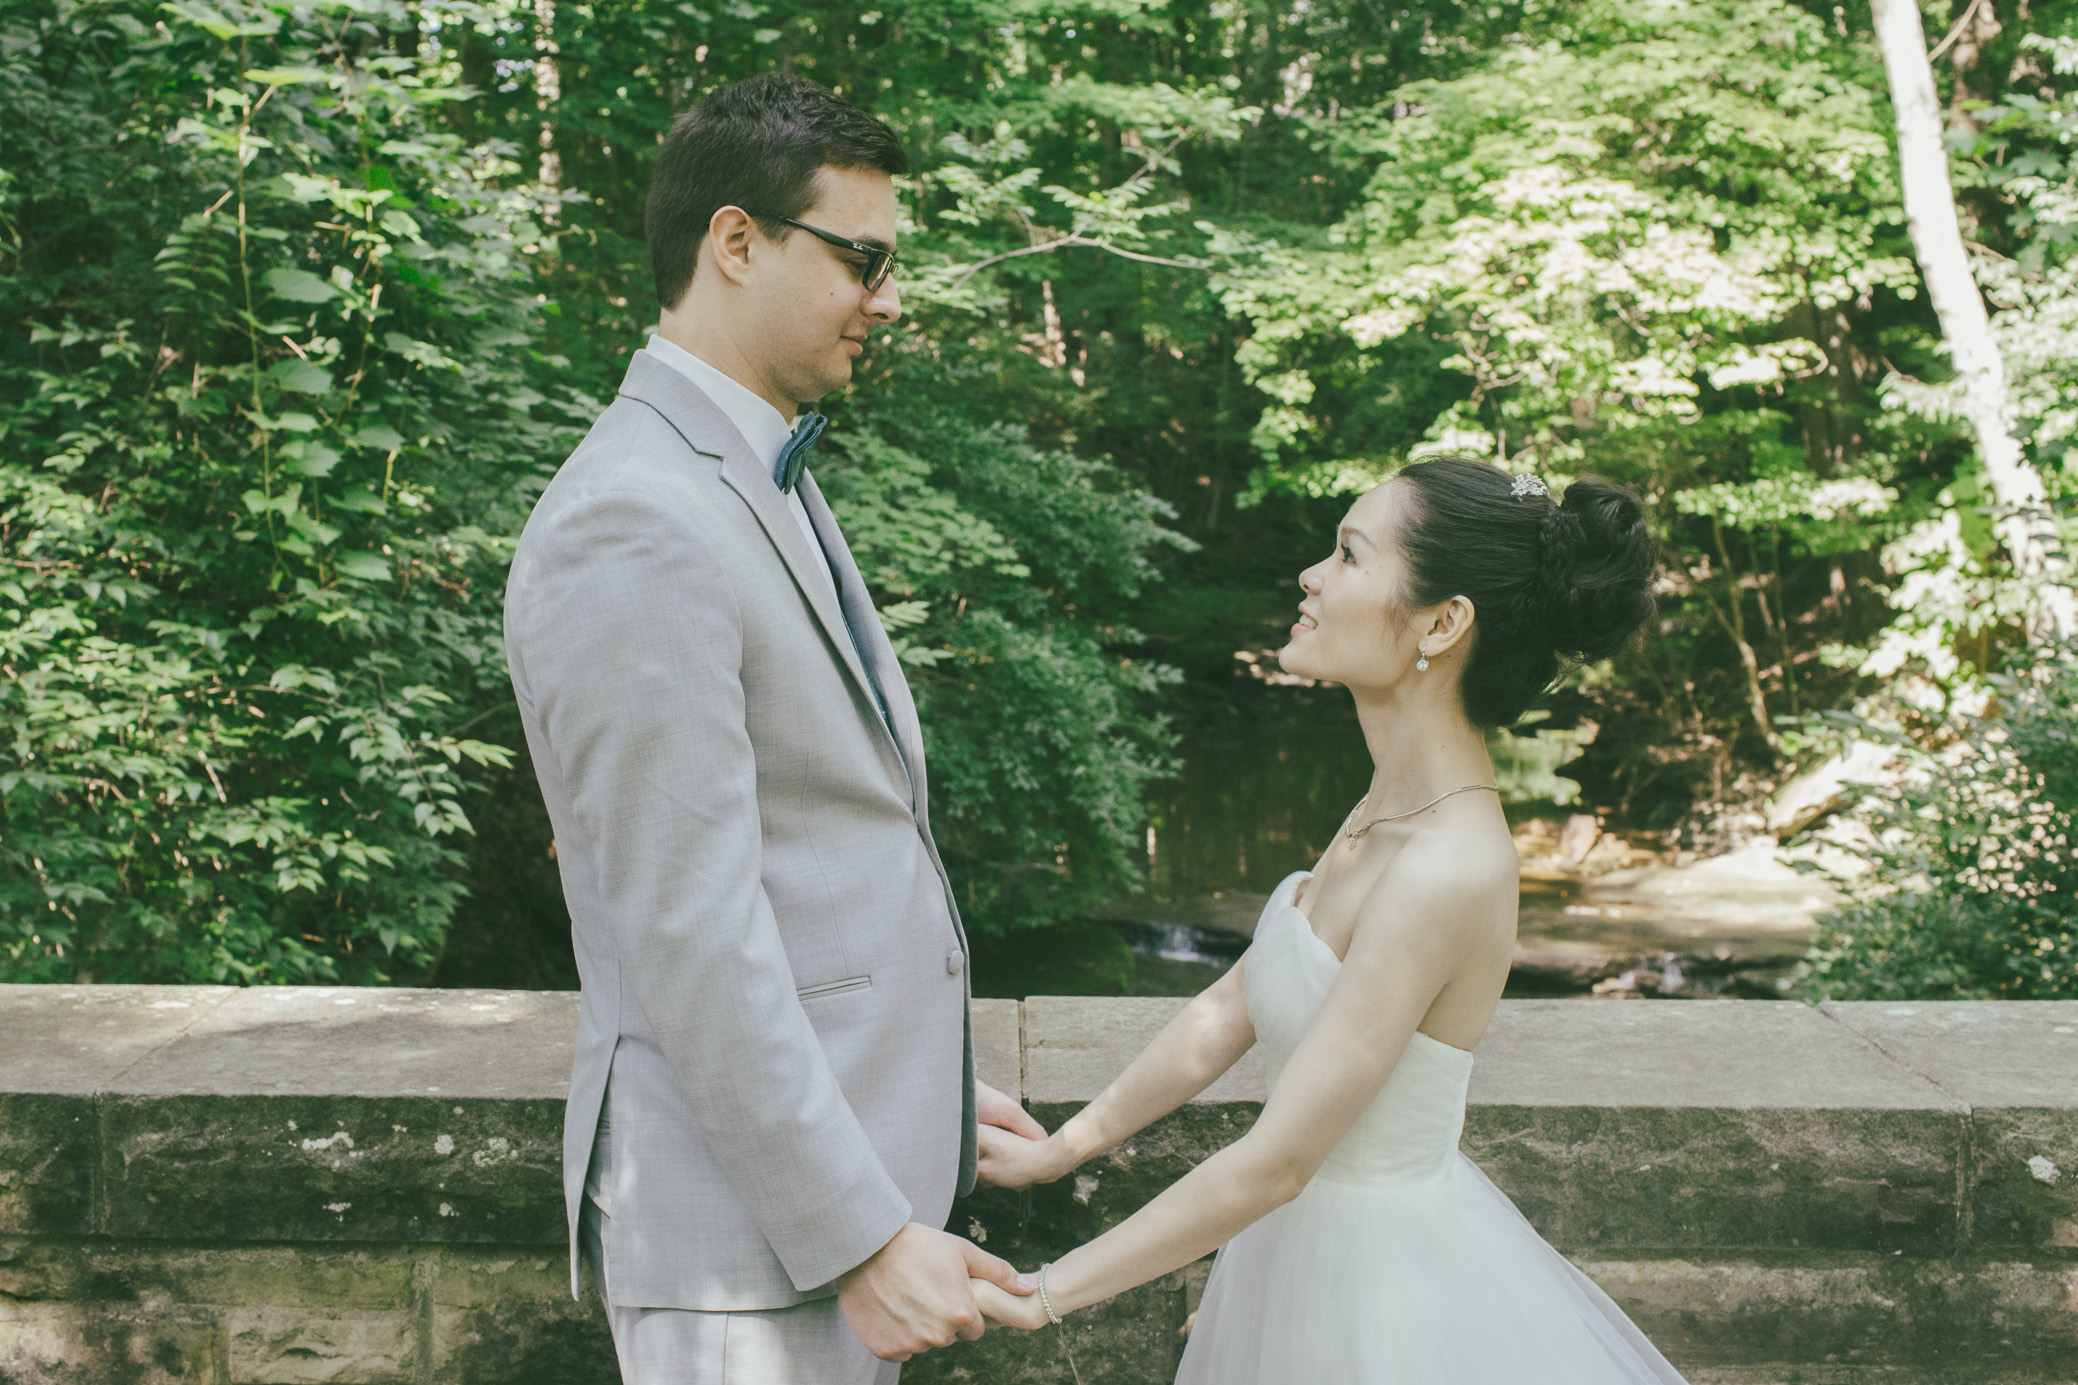 Wedding photography and elopement photography pricing for Savannah, Georgia. Rates start at just $1,800.